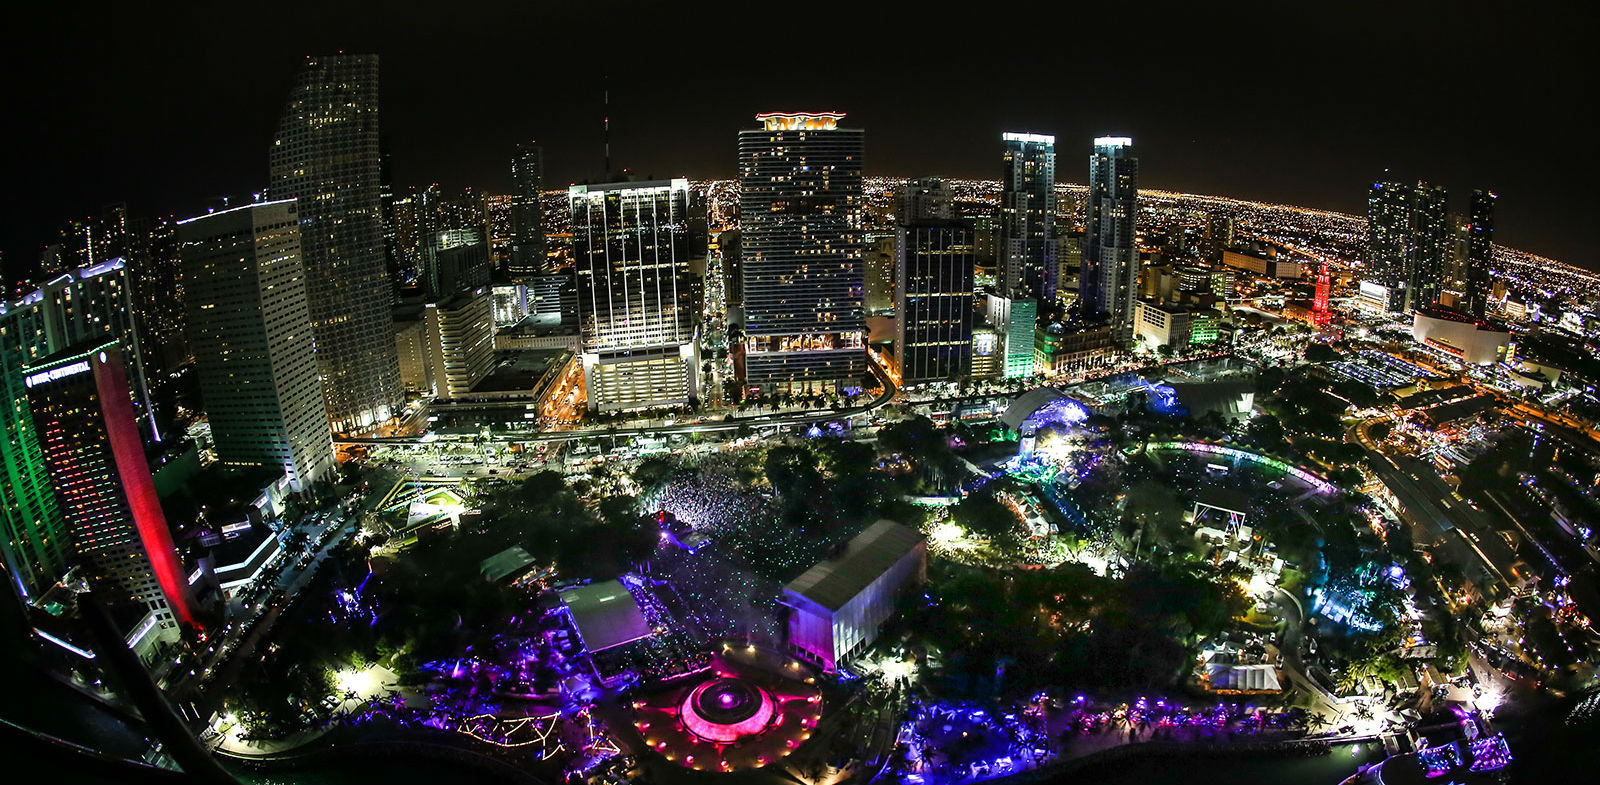 Coming to Miami for Spring Break? Enjoy the Best View of the Magic City at ROOFTOP at E11EVEN